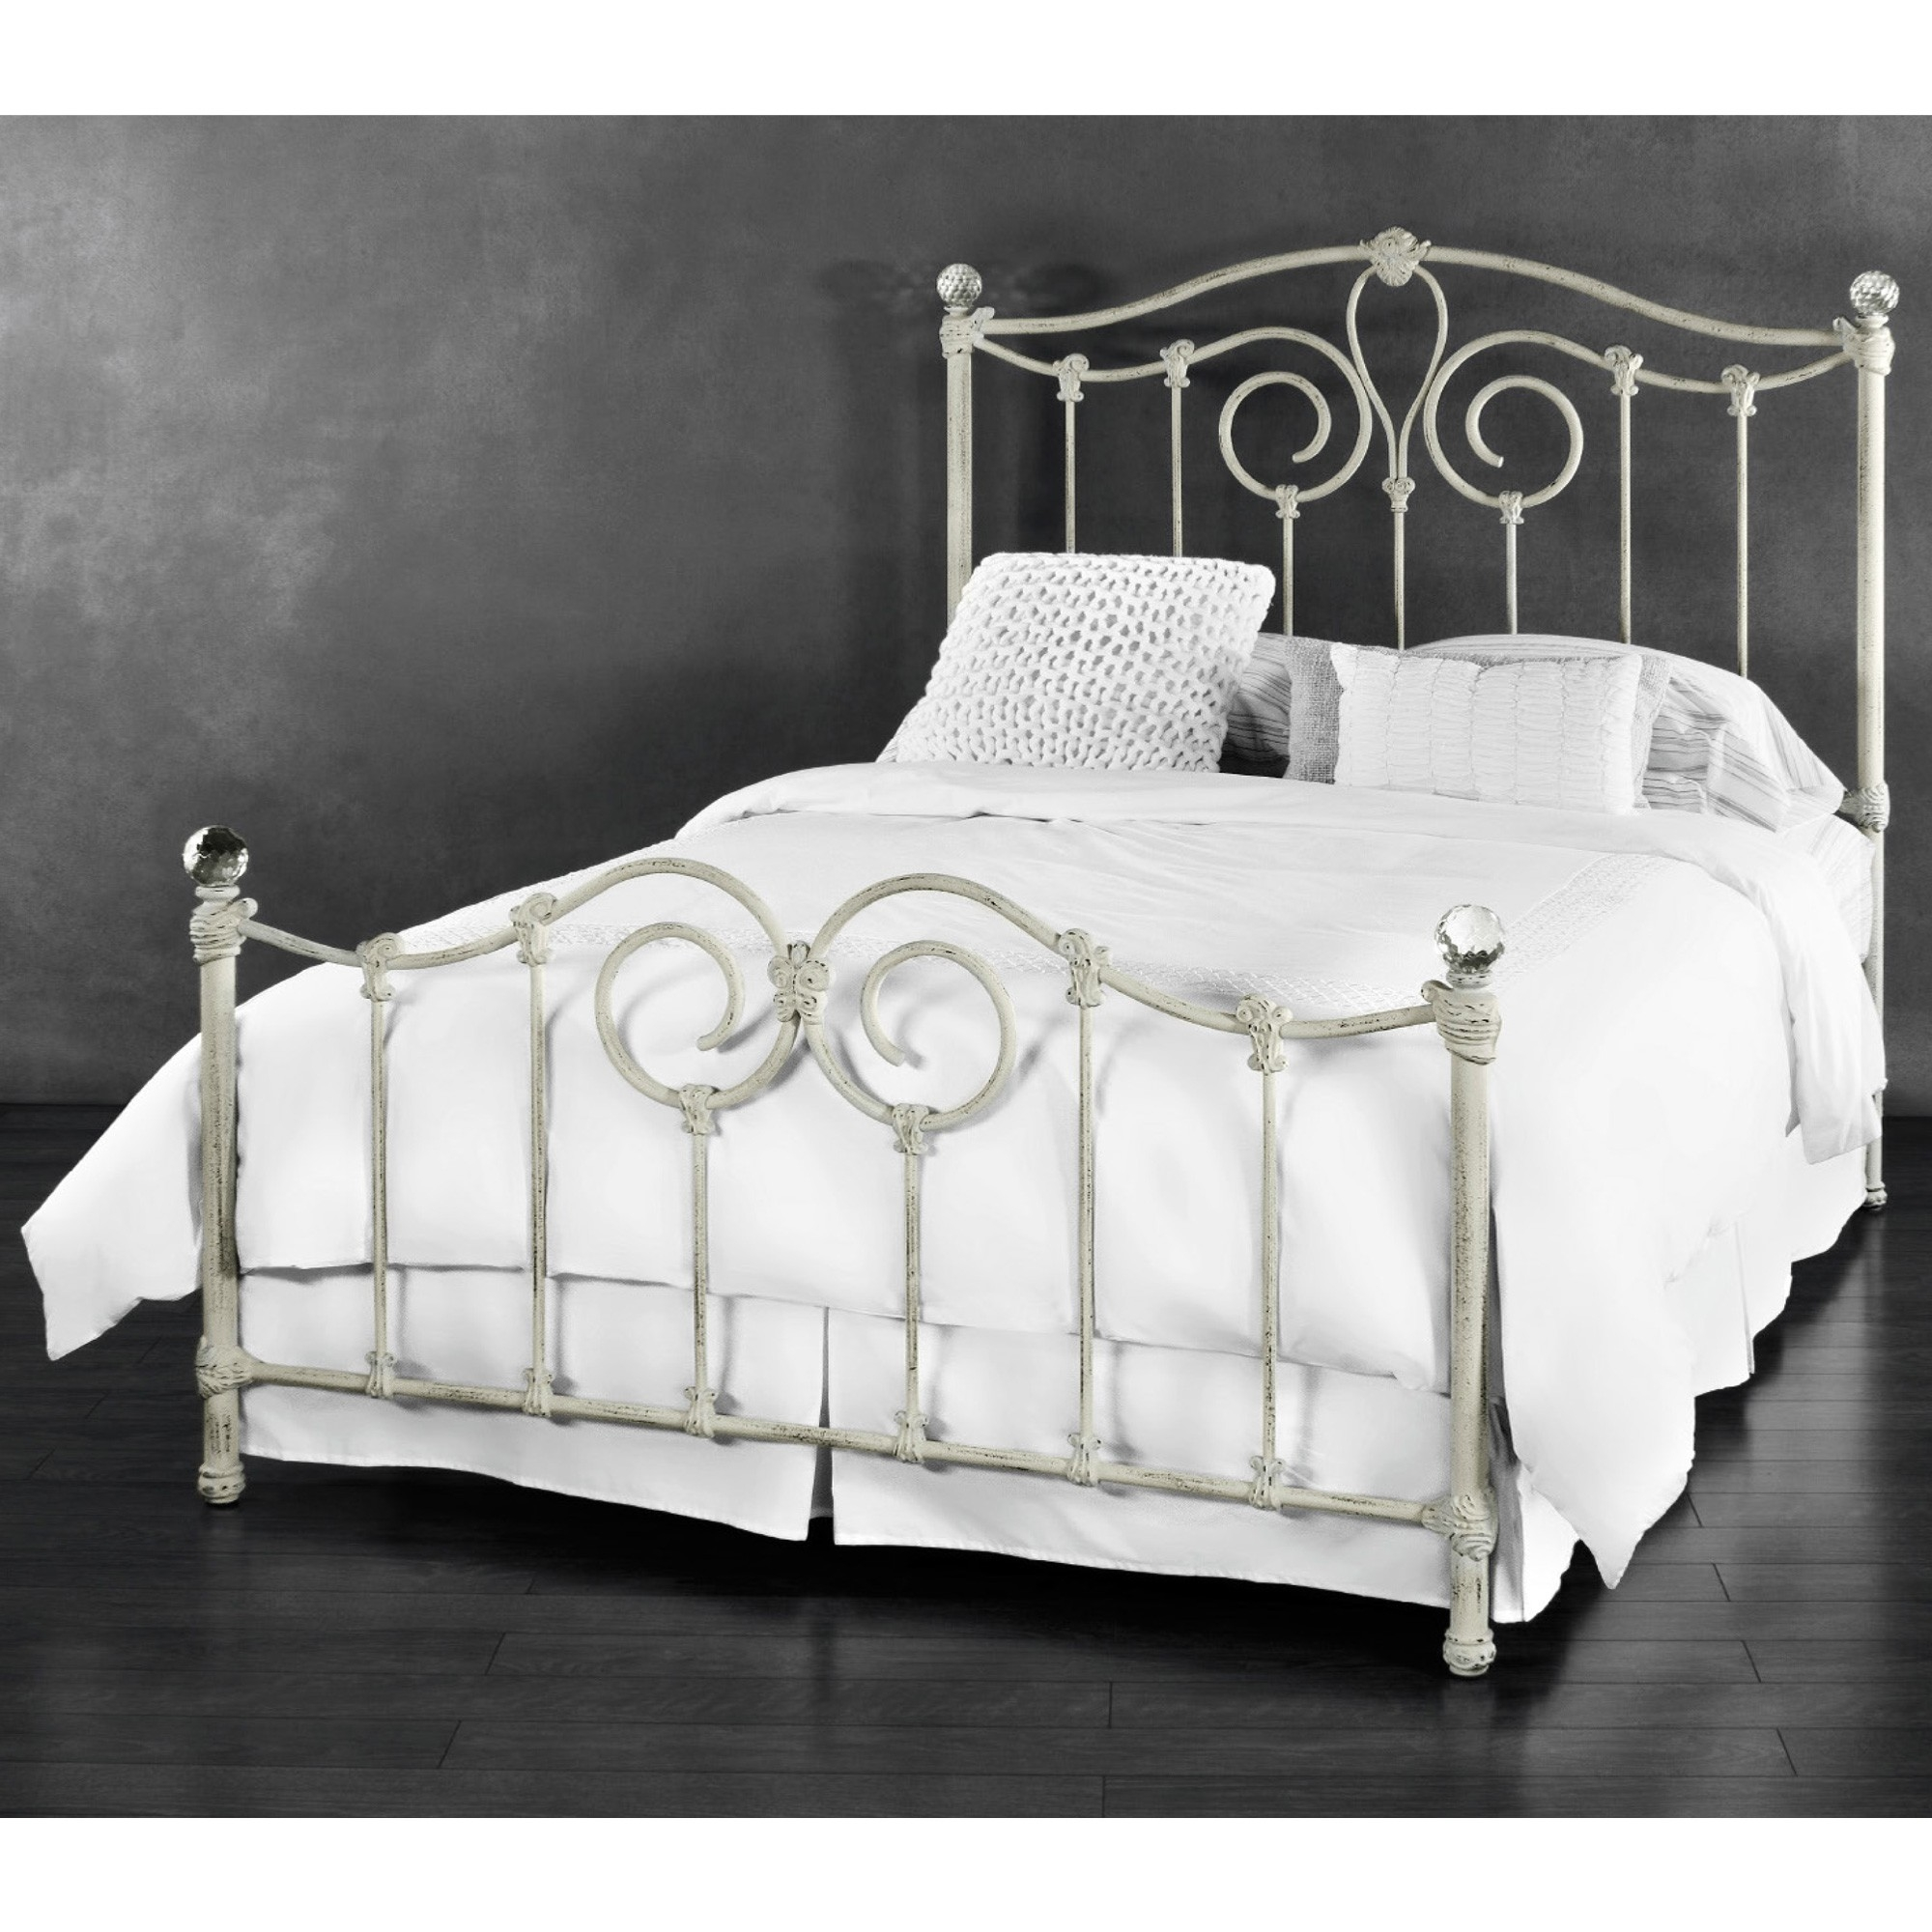 Distressed White Metal Bed Frame2000 X 2000